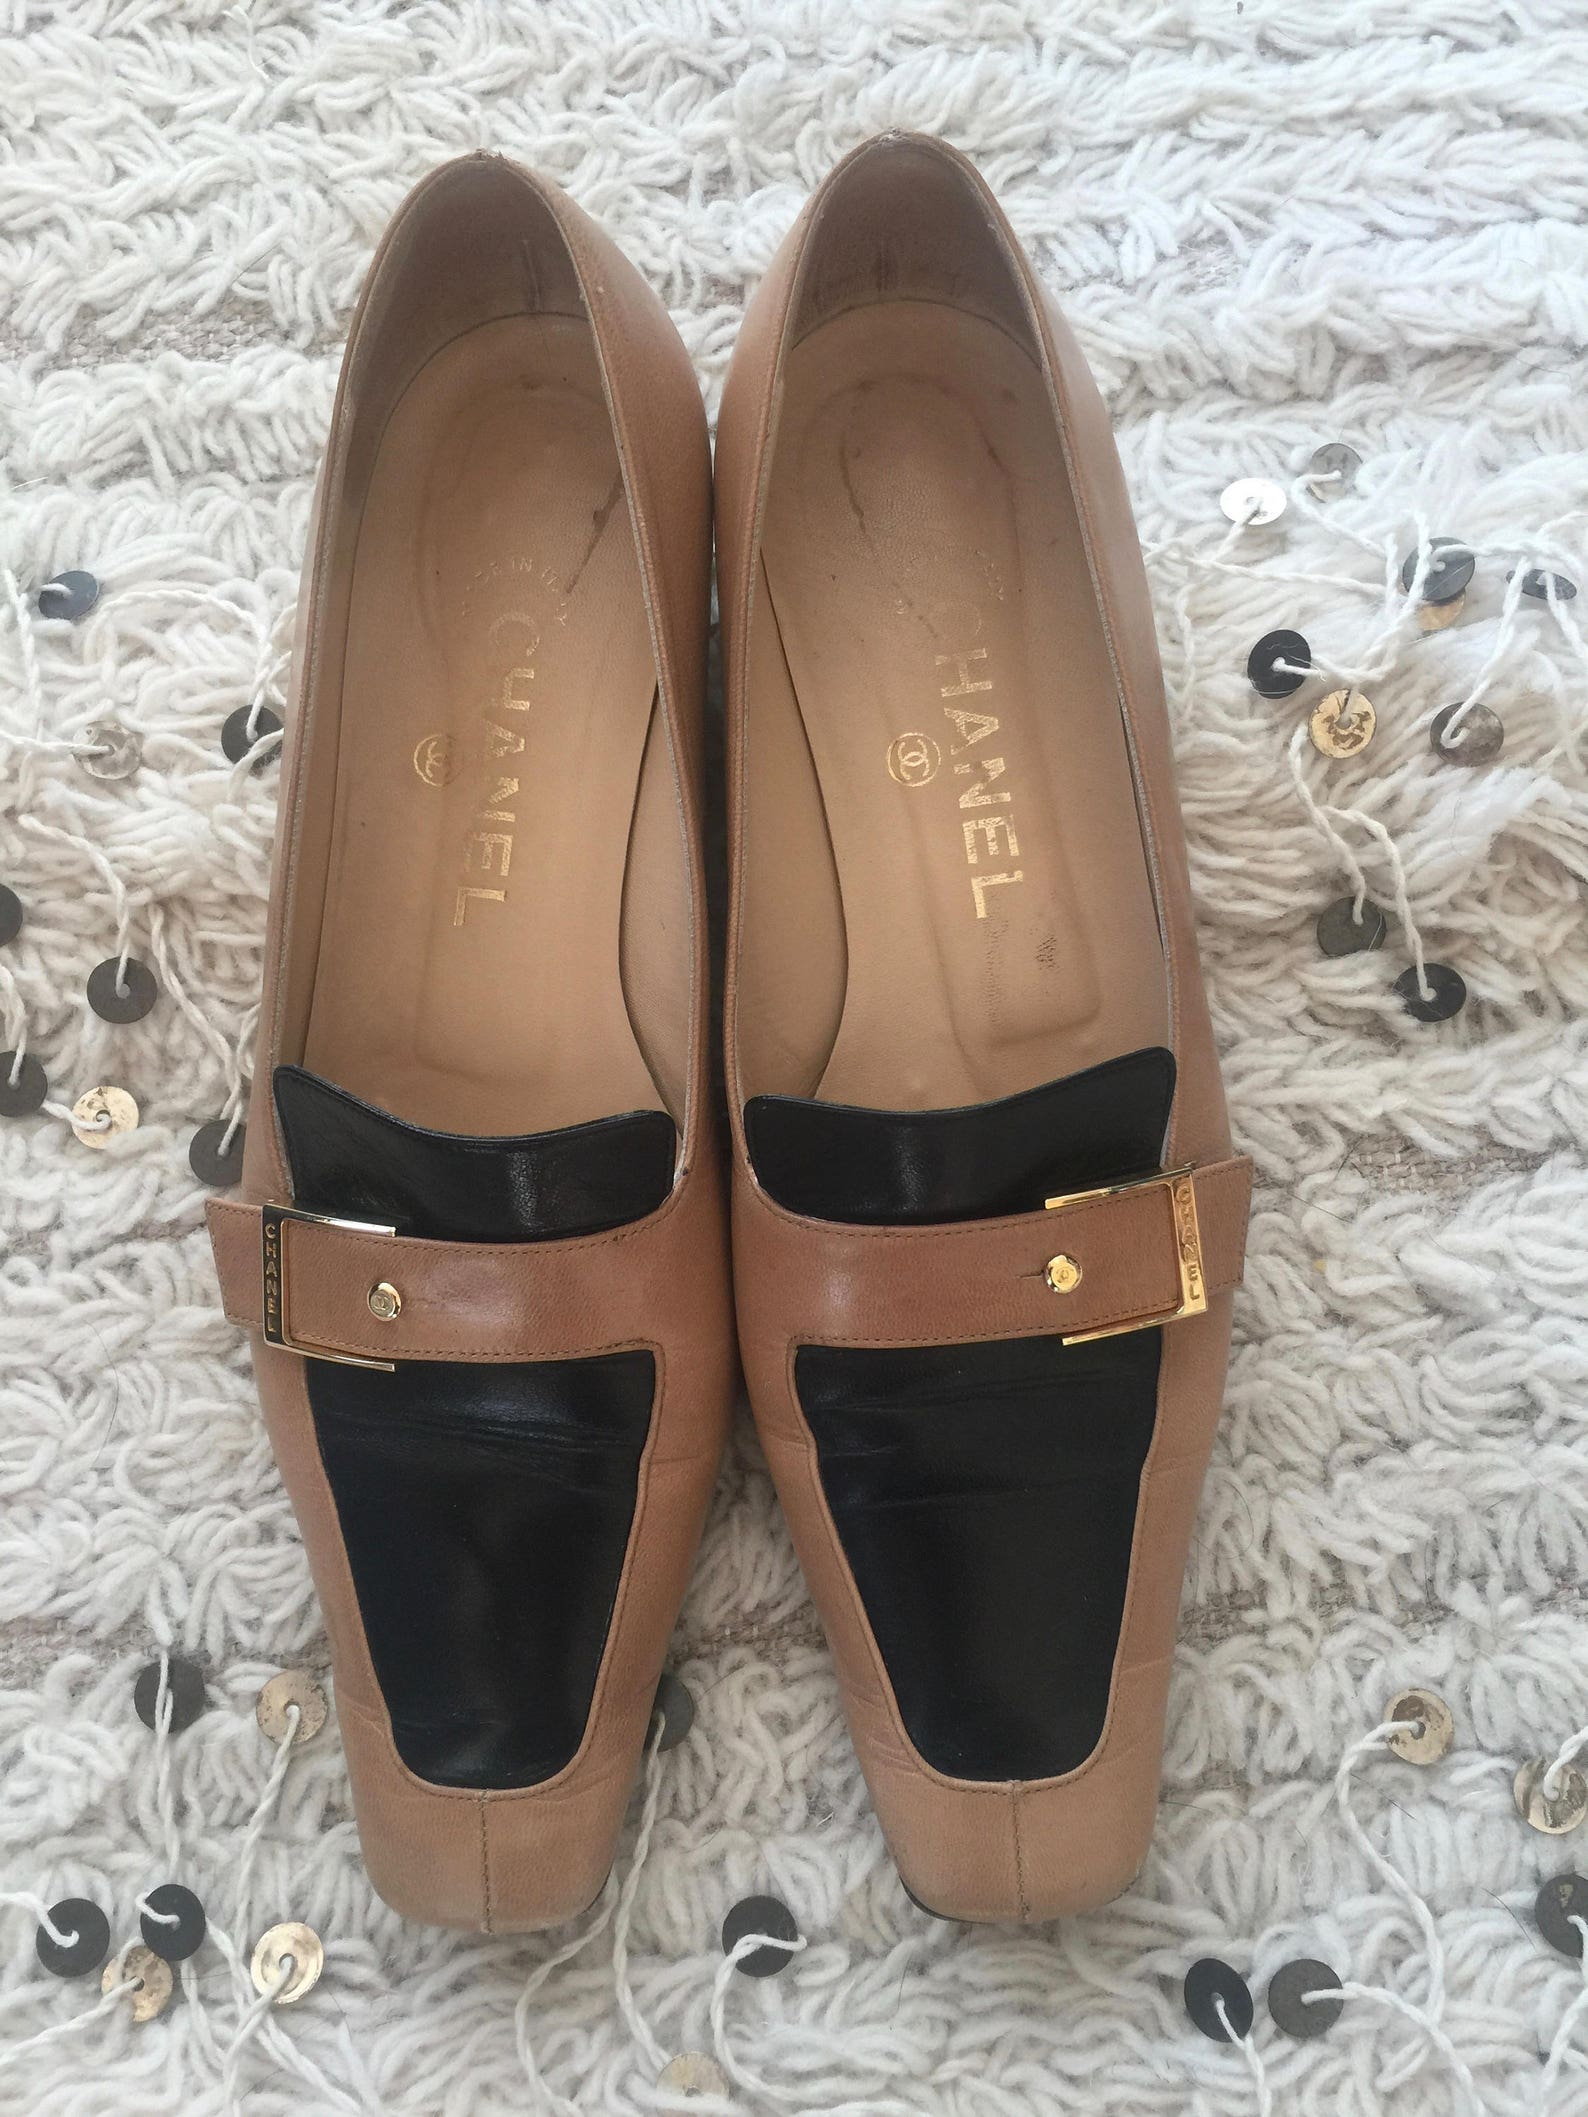 vintage chanel cc logo gold metal plate two tone tan loafers flats smoking shoes slipper ballet driving flat 38 us 7 - 7.5